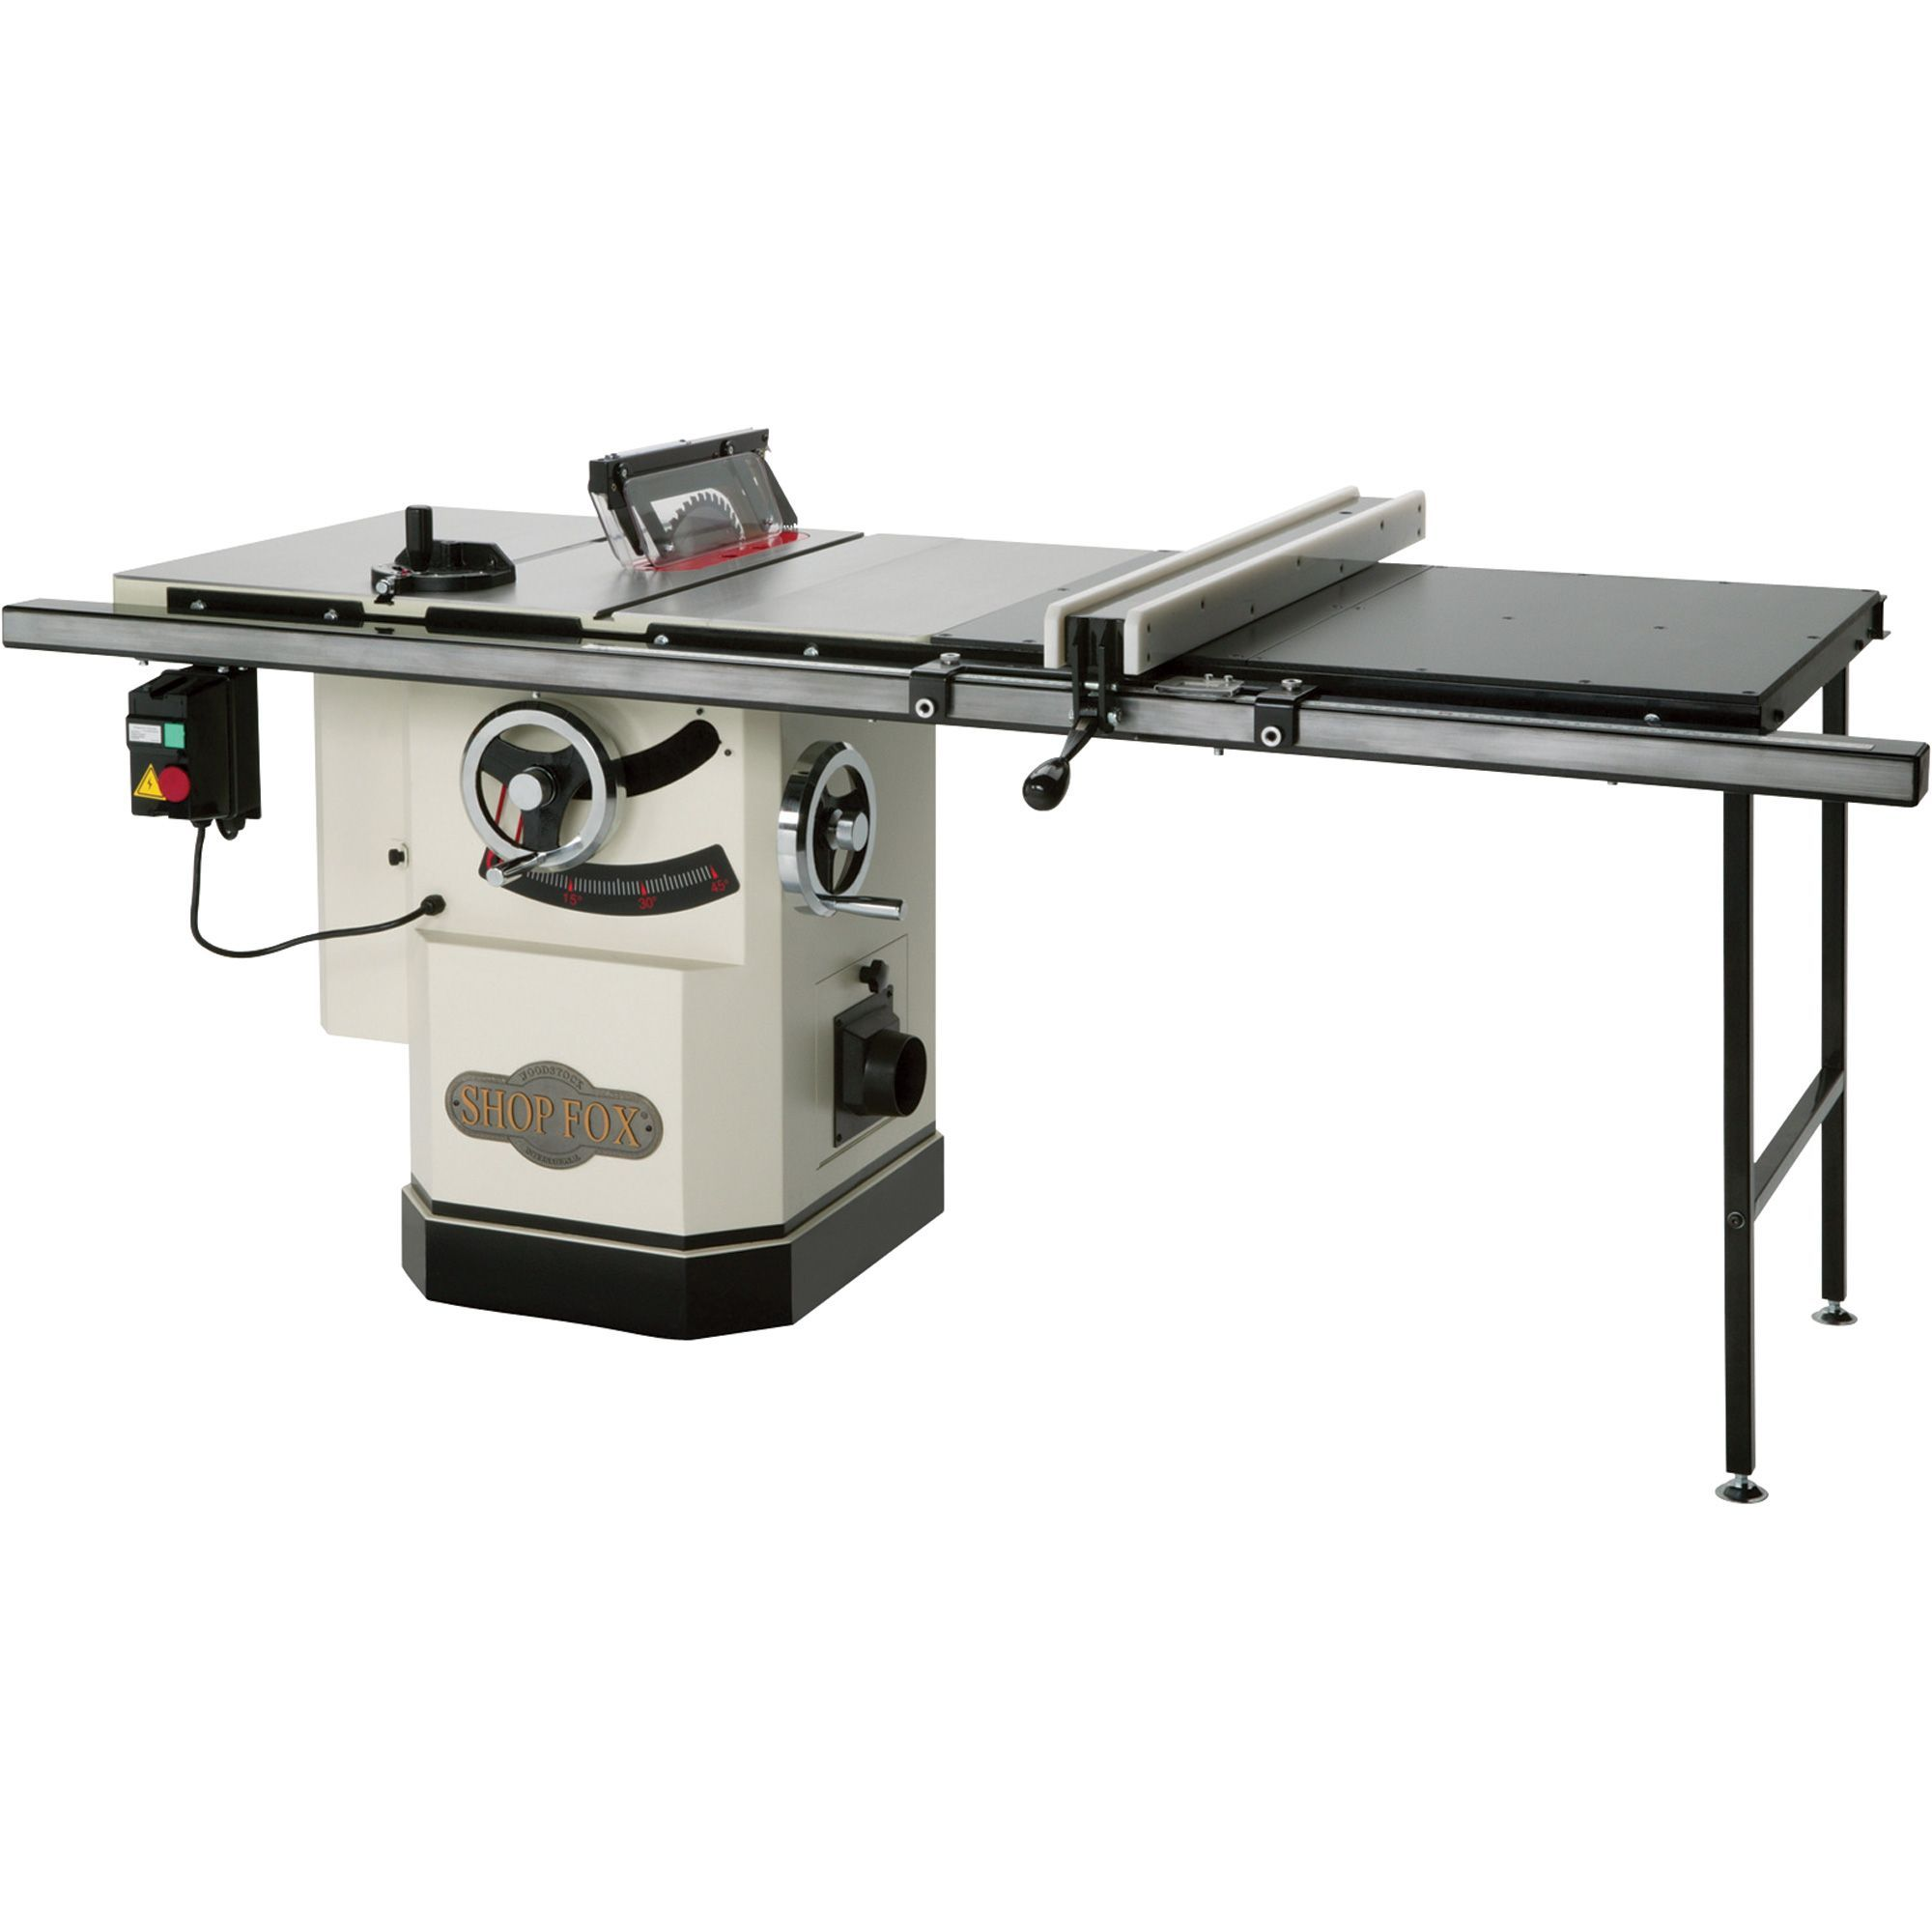 Top 5 Best Miter Saw Review Best Table Saw Cabinet Table Saw Table Saw